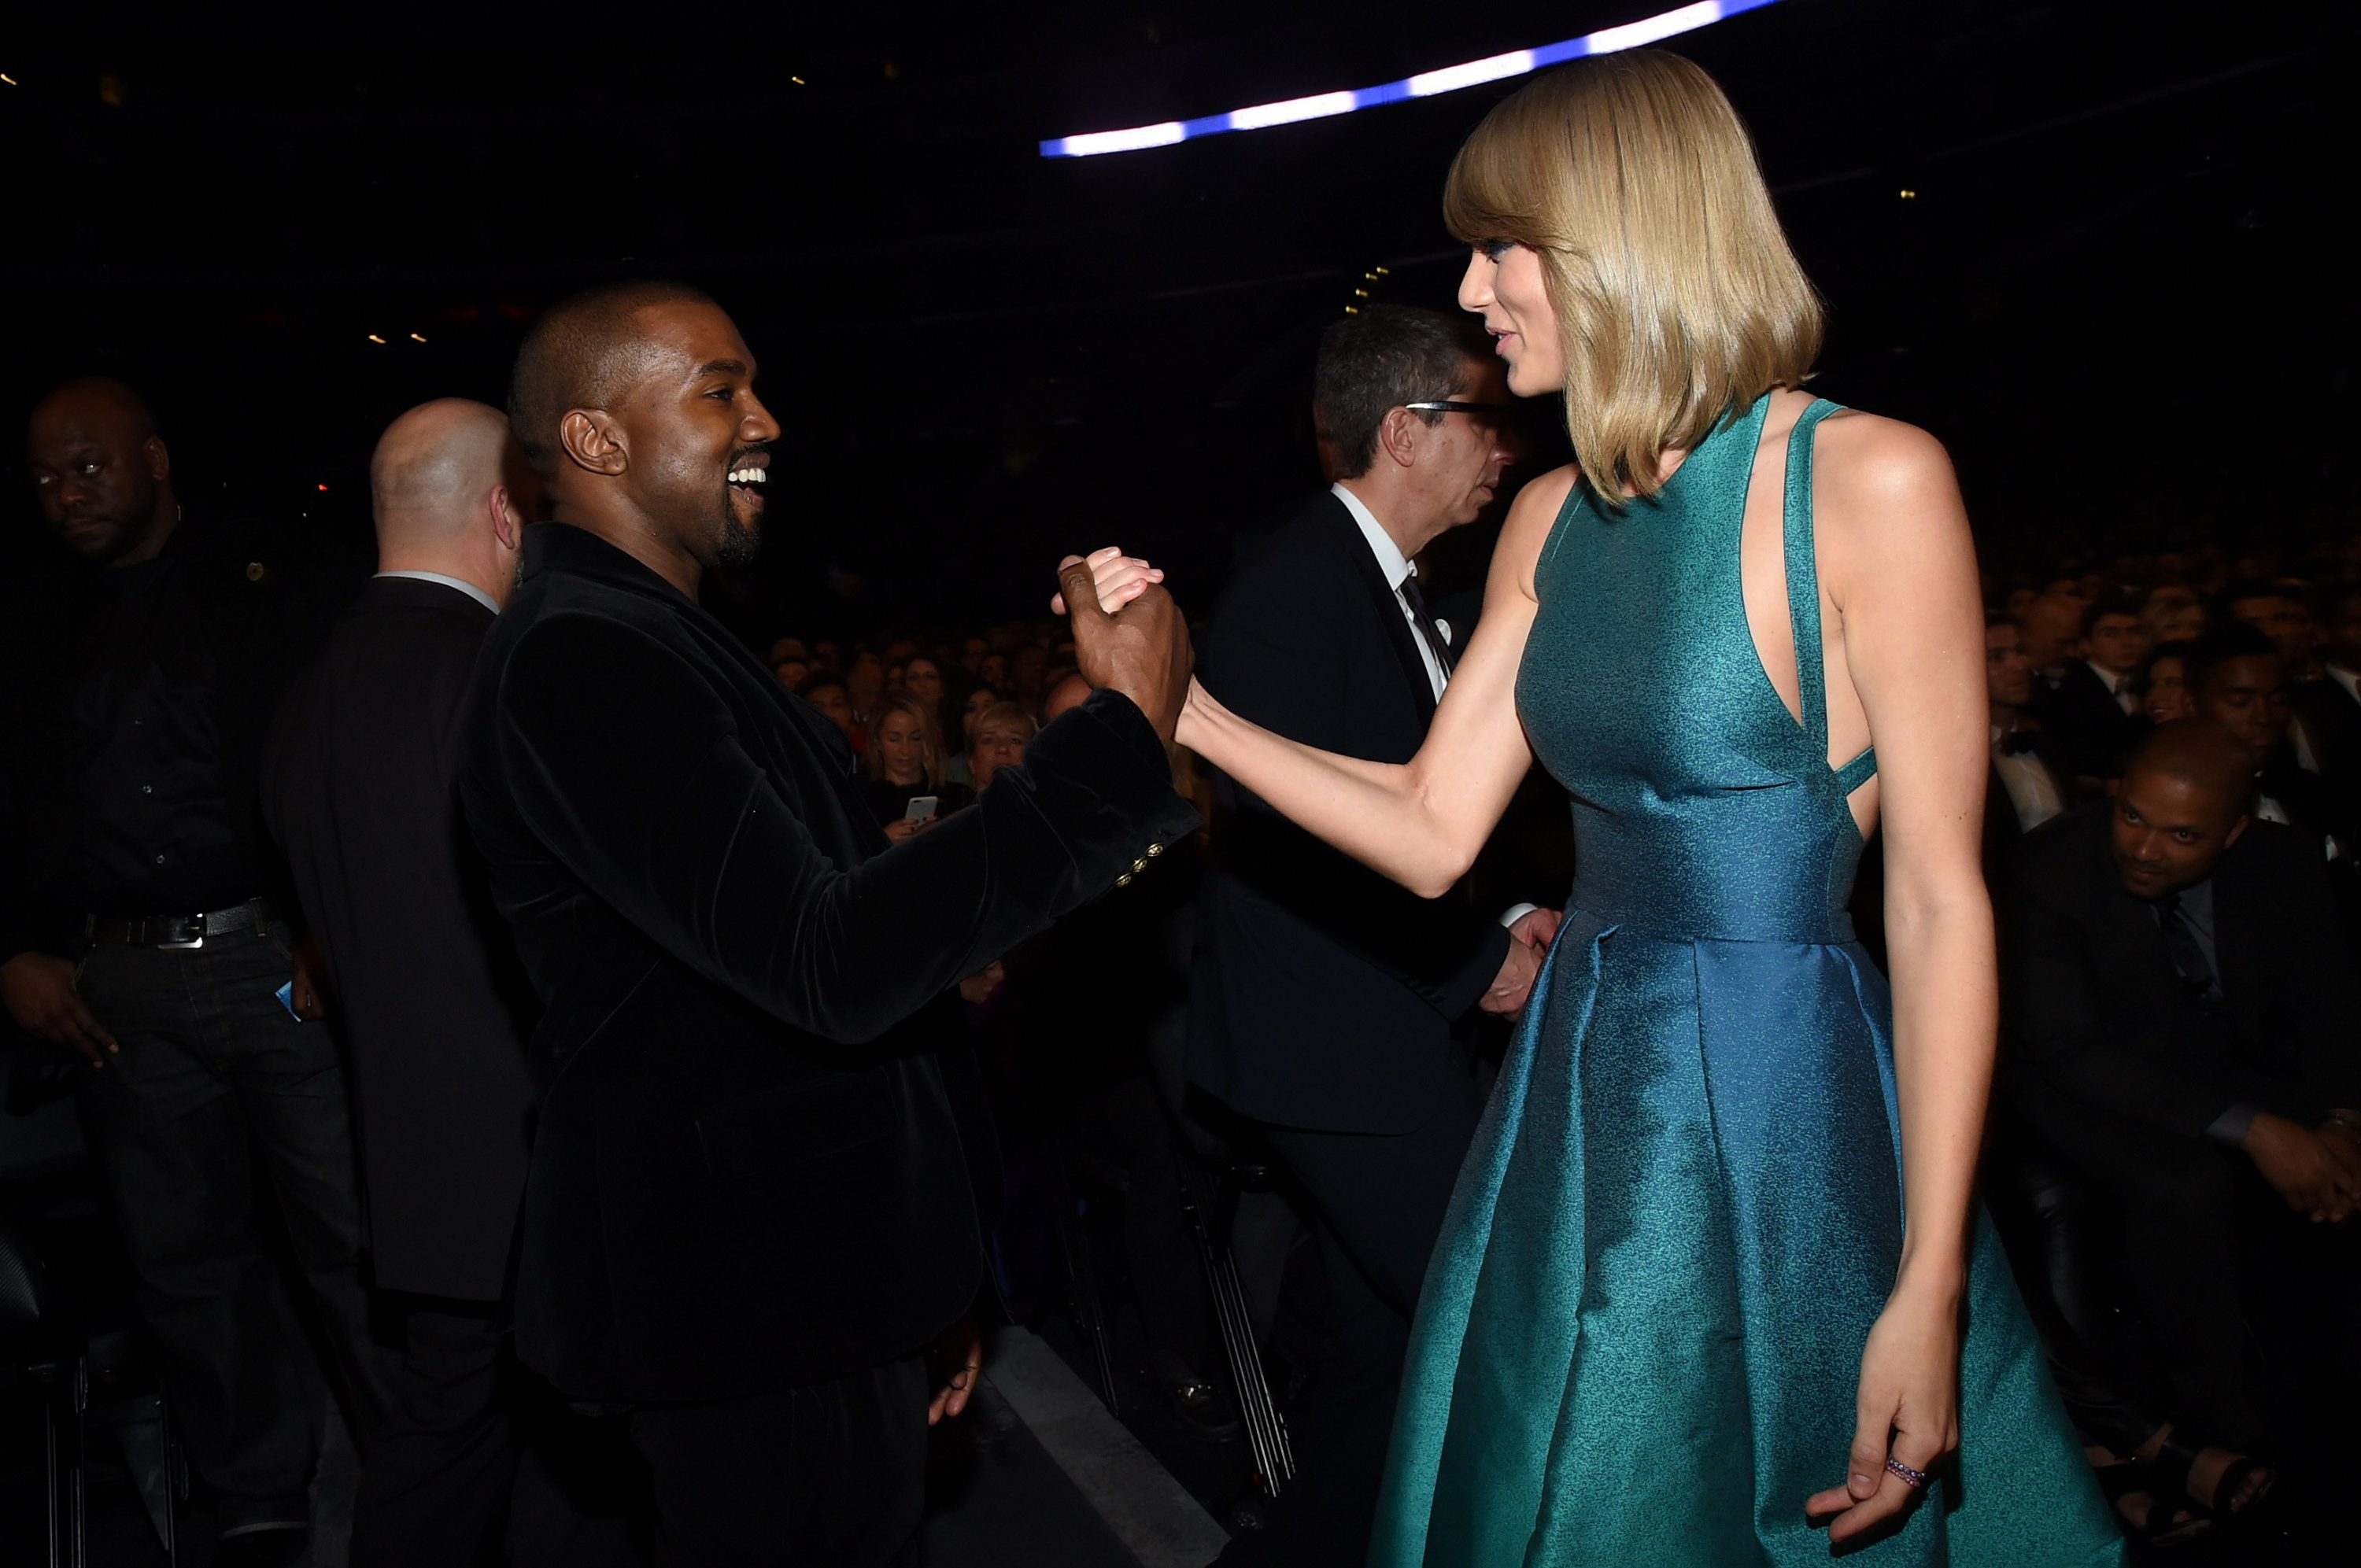 Recording Artists Kanye West and Taylor Swift attend The 57th Annual GRAMMY Awards at the STAPLES Center on Feb. 8, 2015 in Los Angeles.